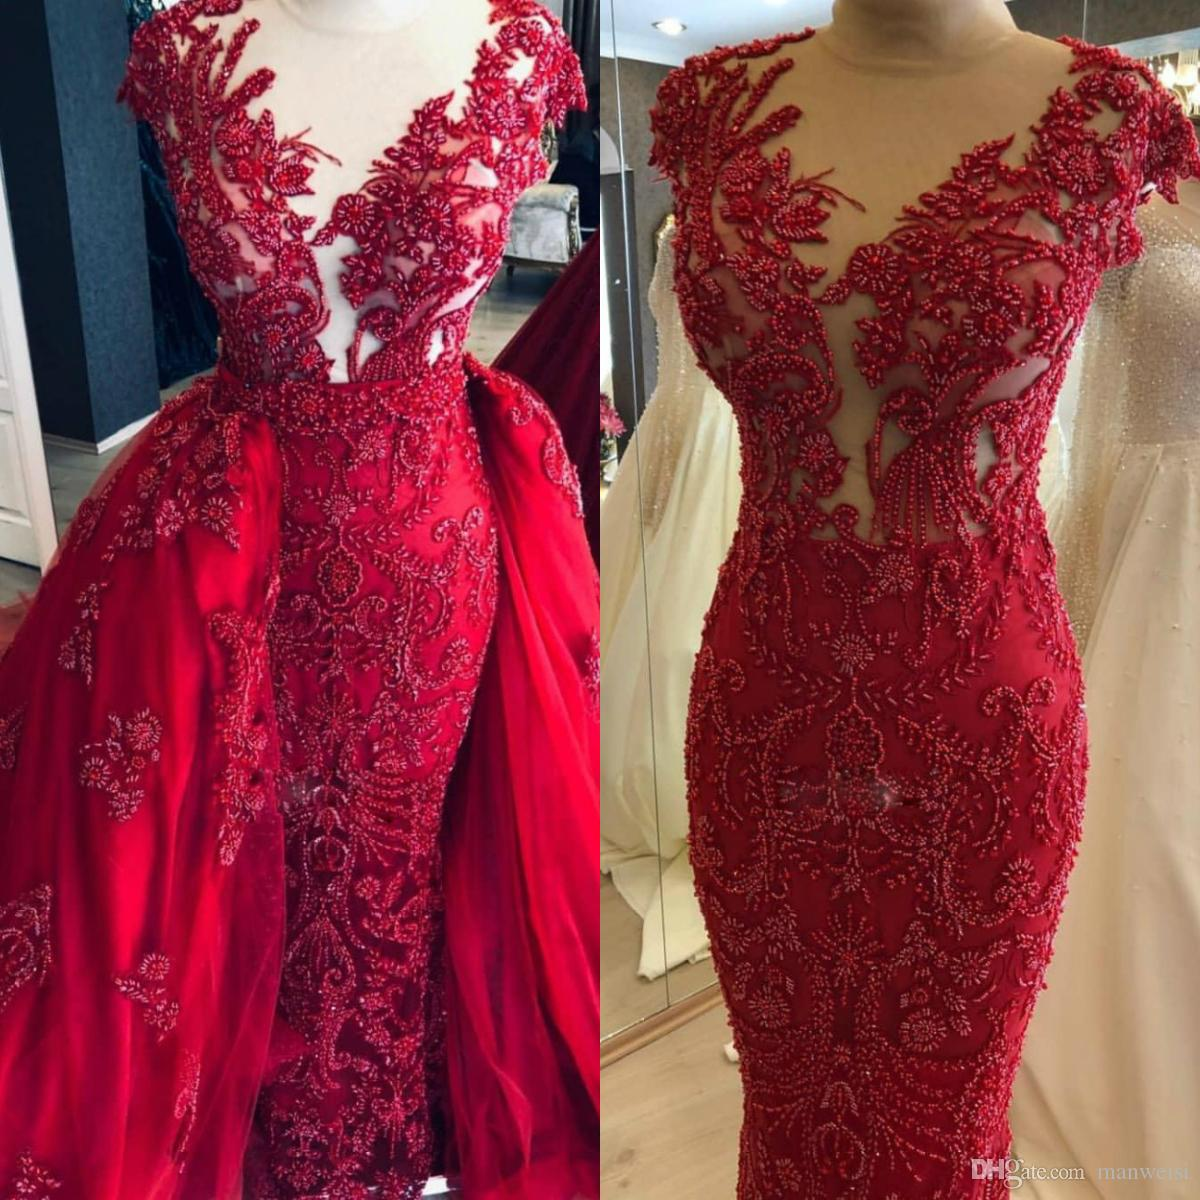 Arabic 2020 Dark Red Luxurious Evening Dresses Lace Beaded Mermaid Prom Dresses Detachable Train Tulle Formal Wears